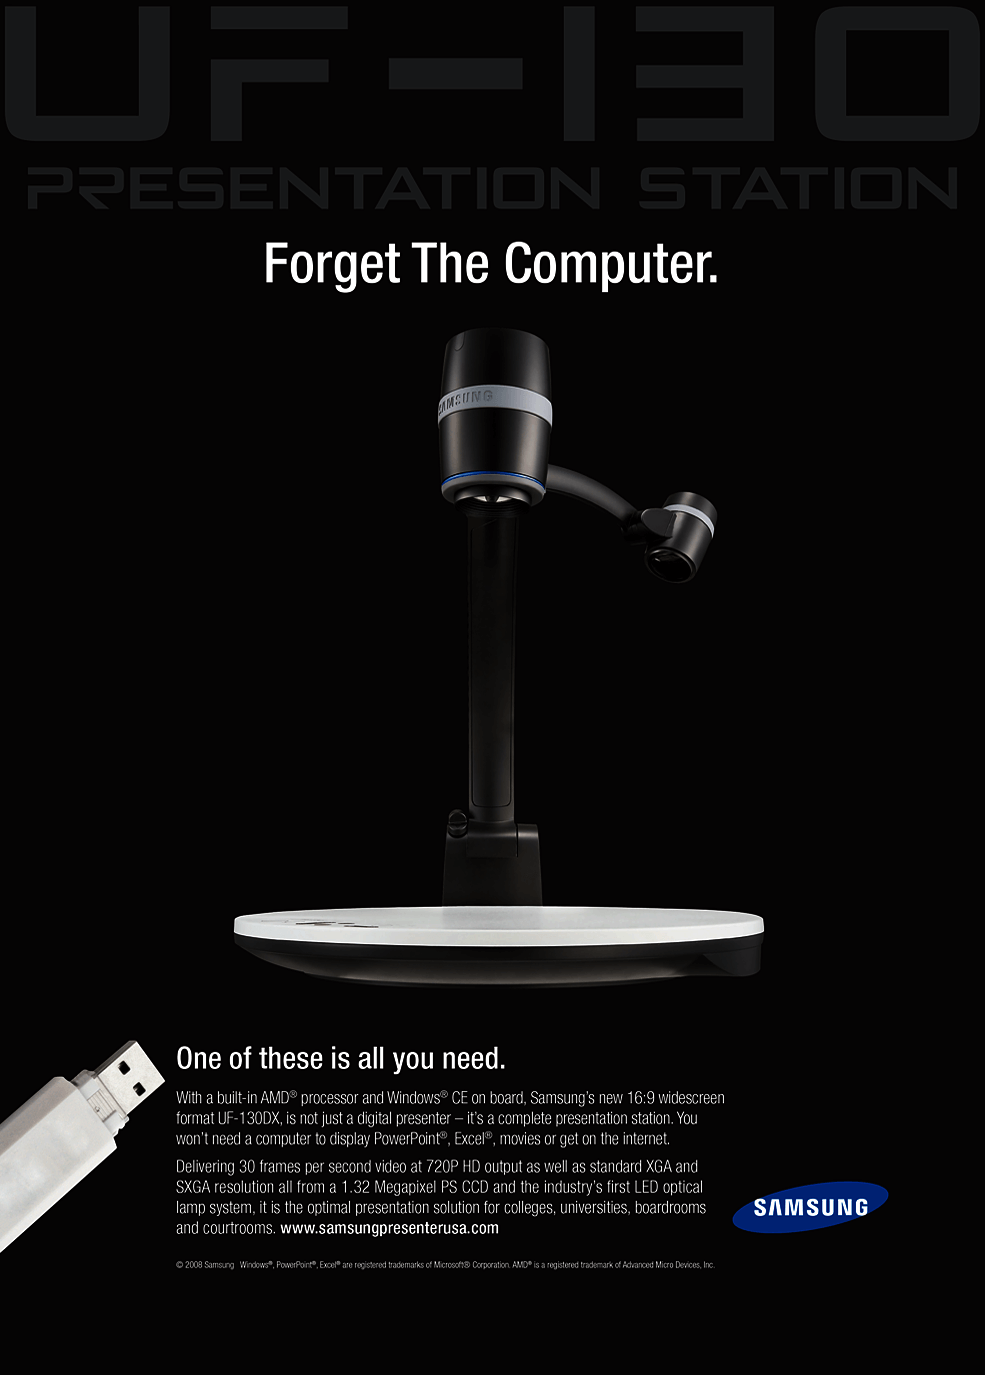 Samsung - Forget the Computer.